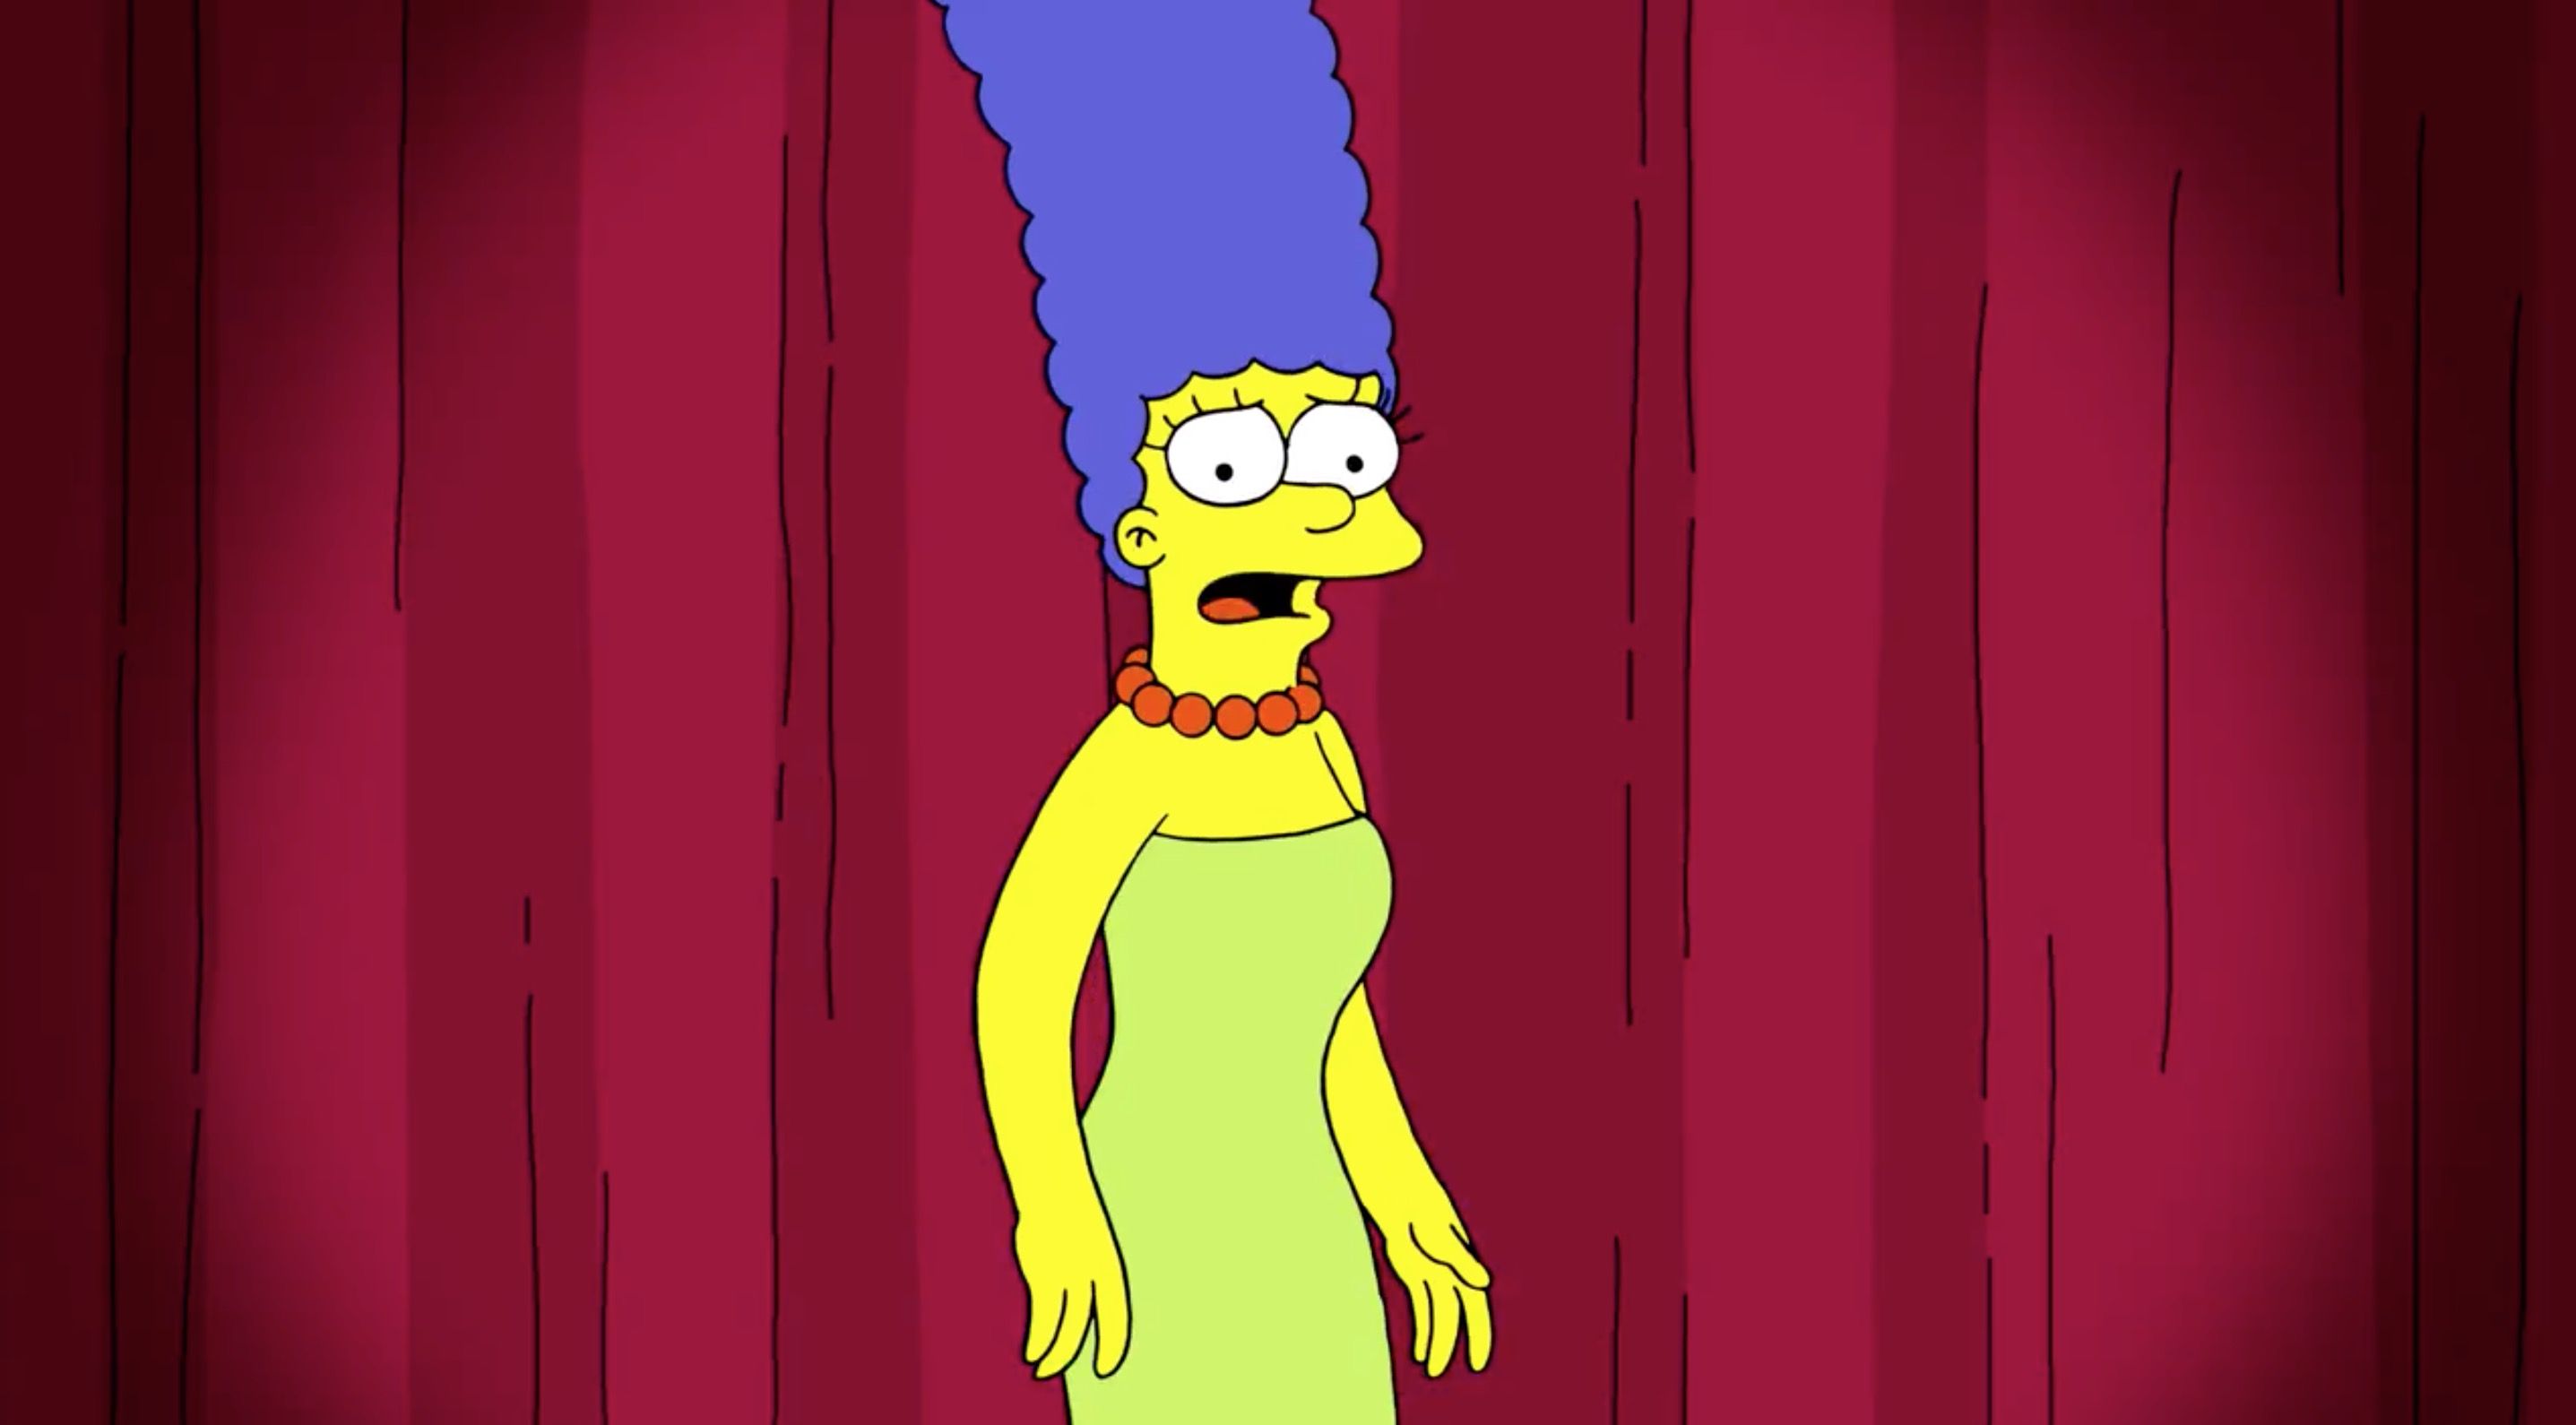 Marge Simpson responds to Trump adviser's Kamala Harris comparison